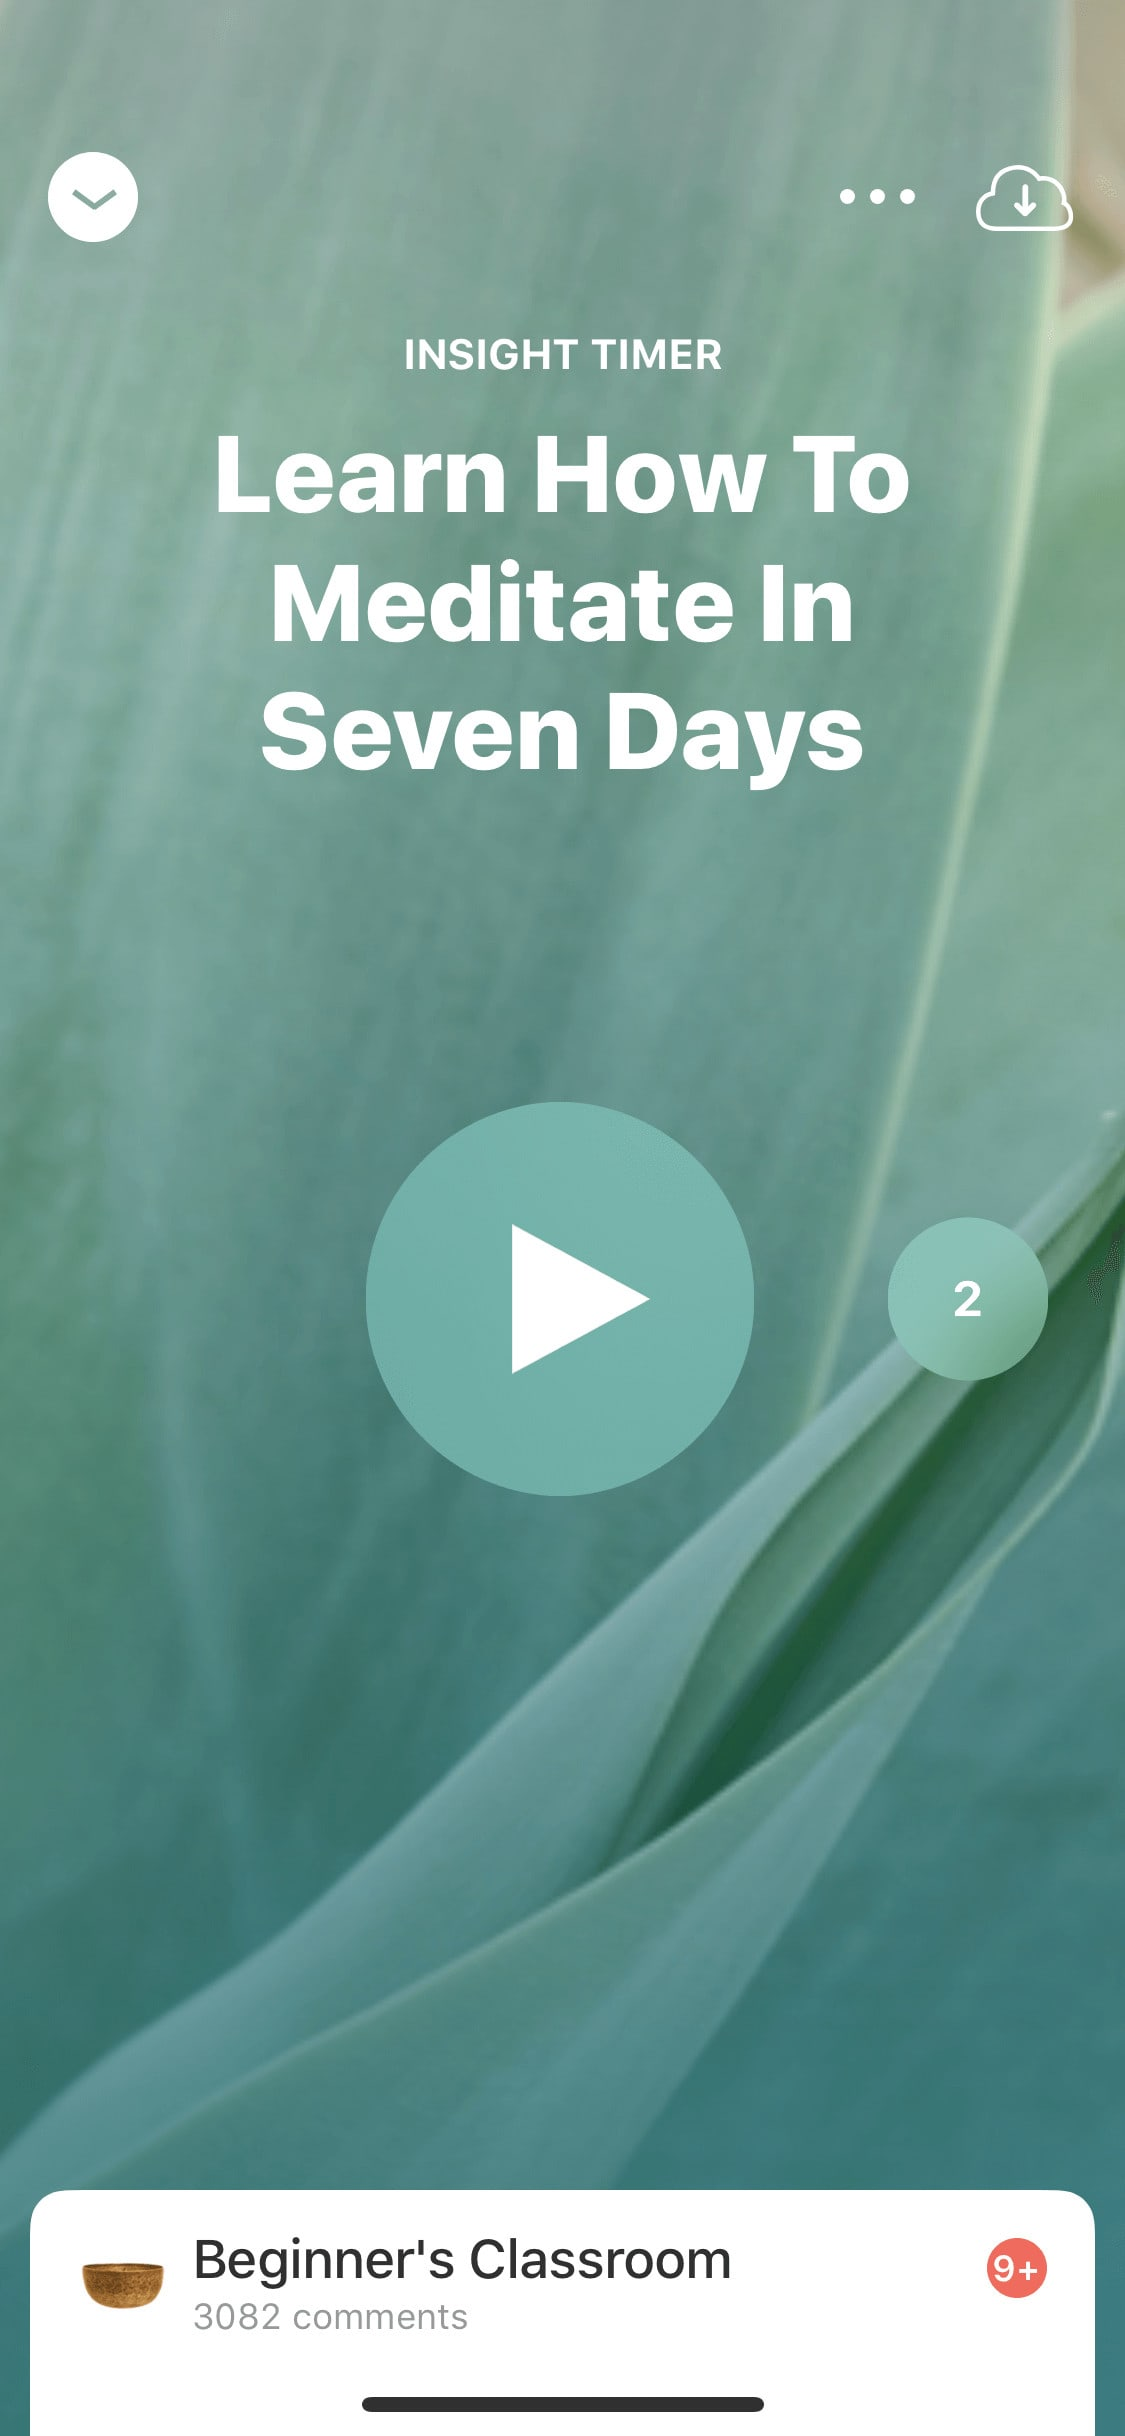 Class by Insight Timer on iOS